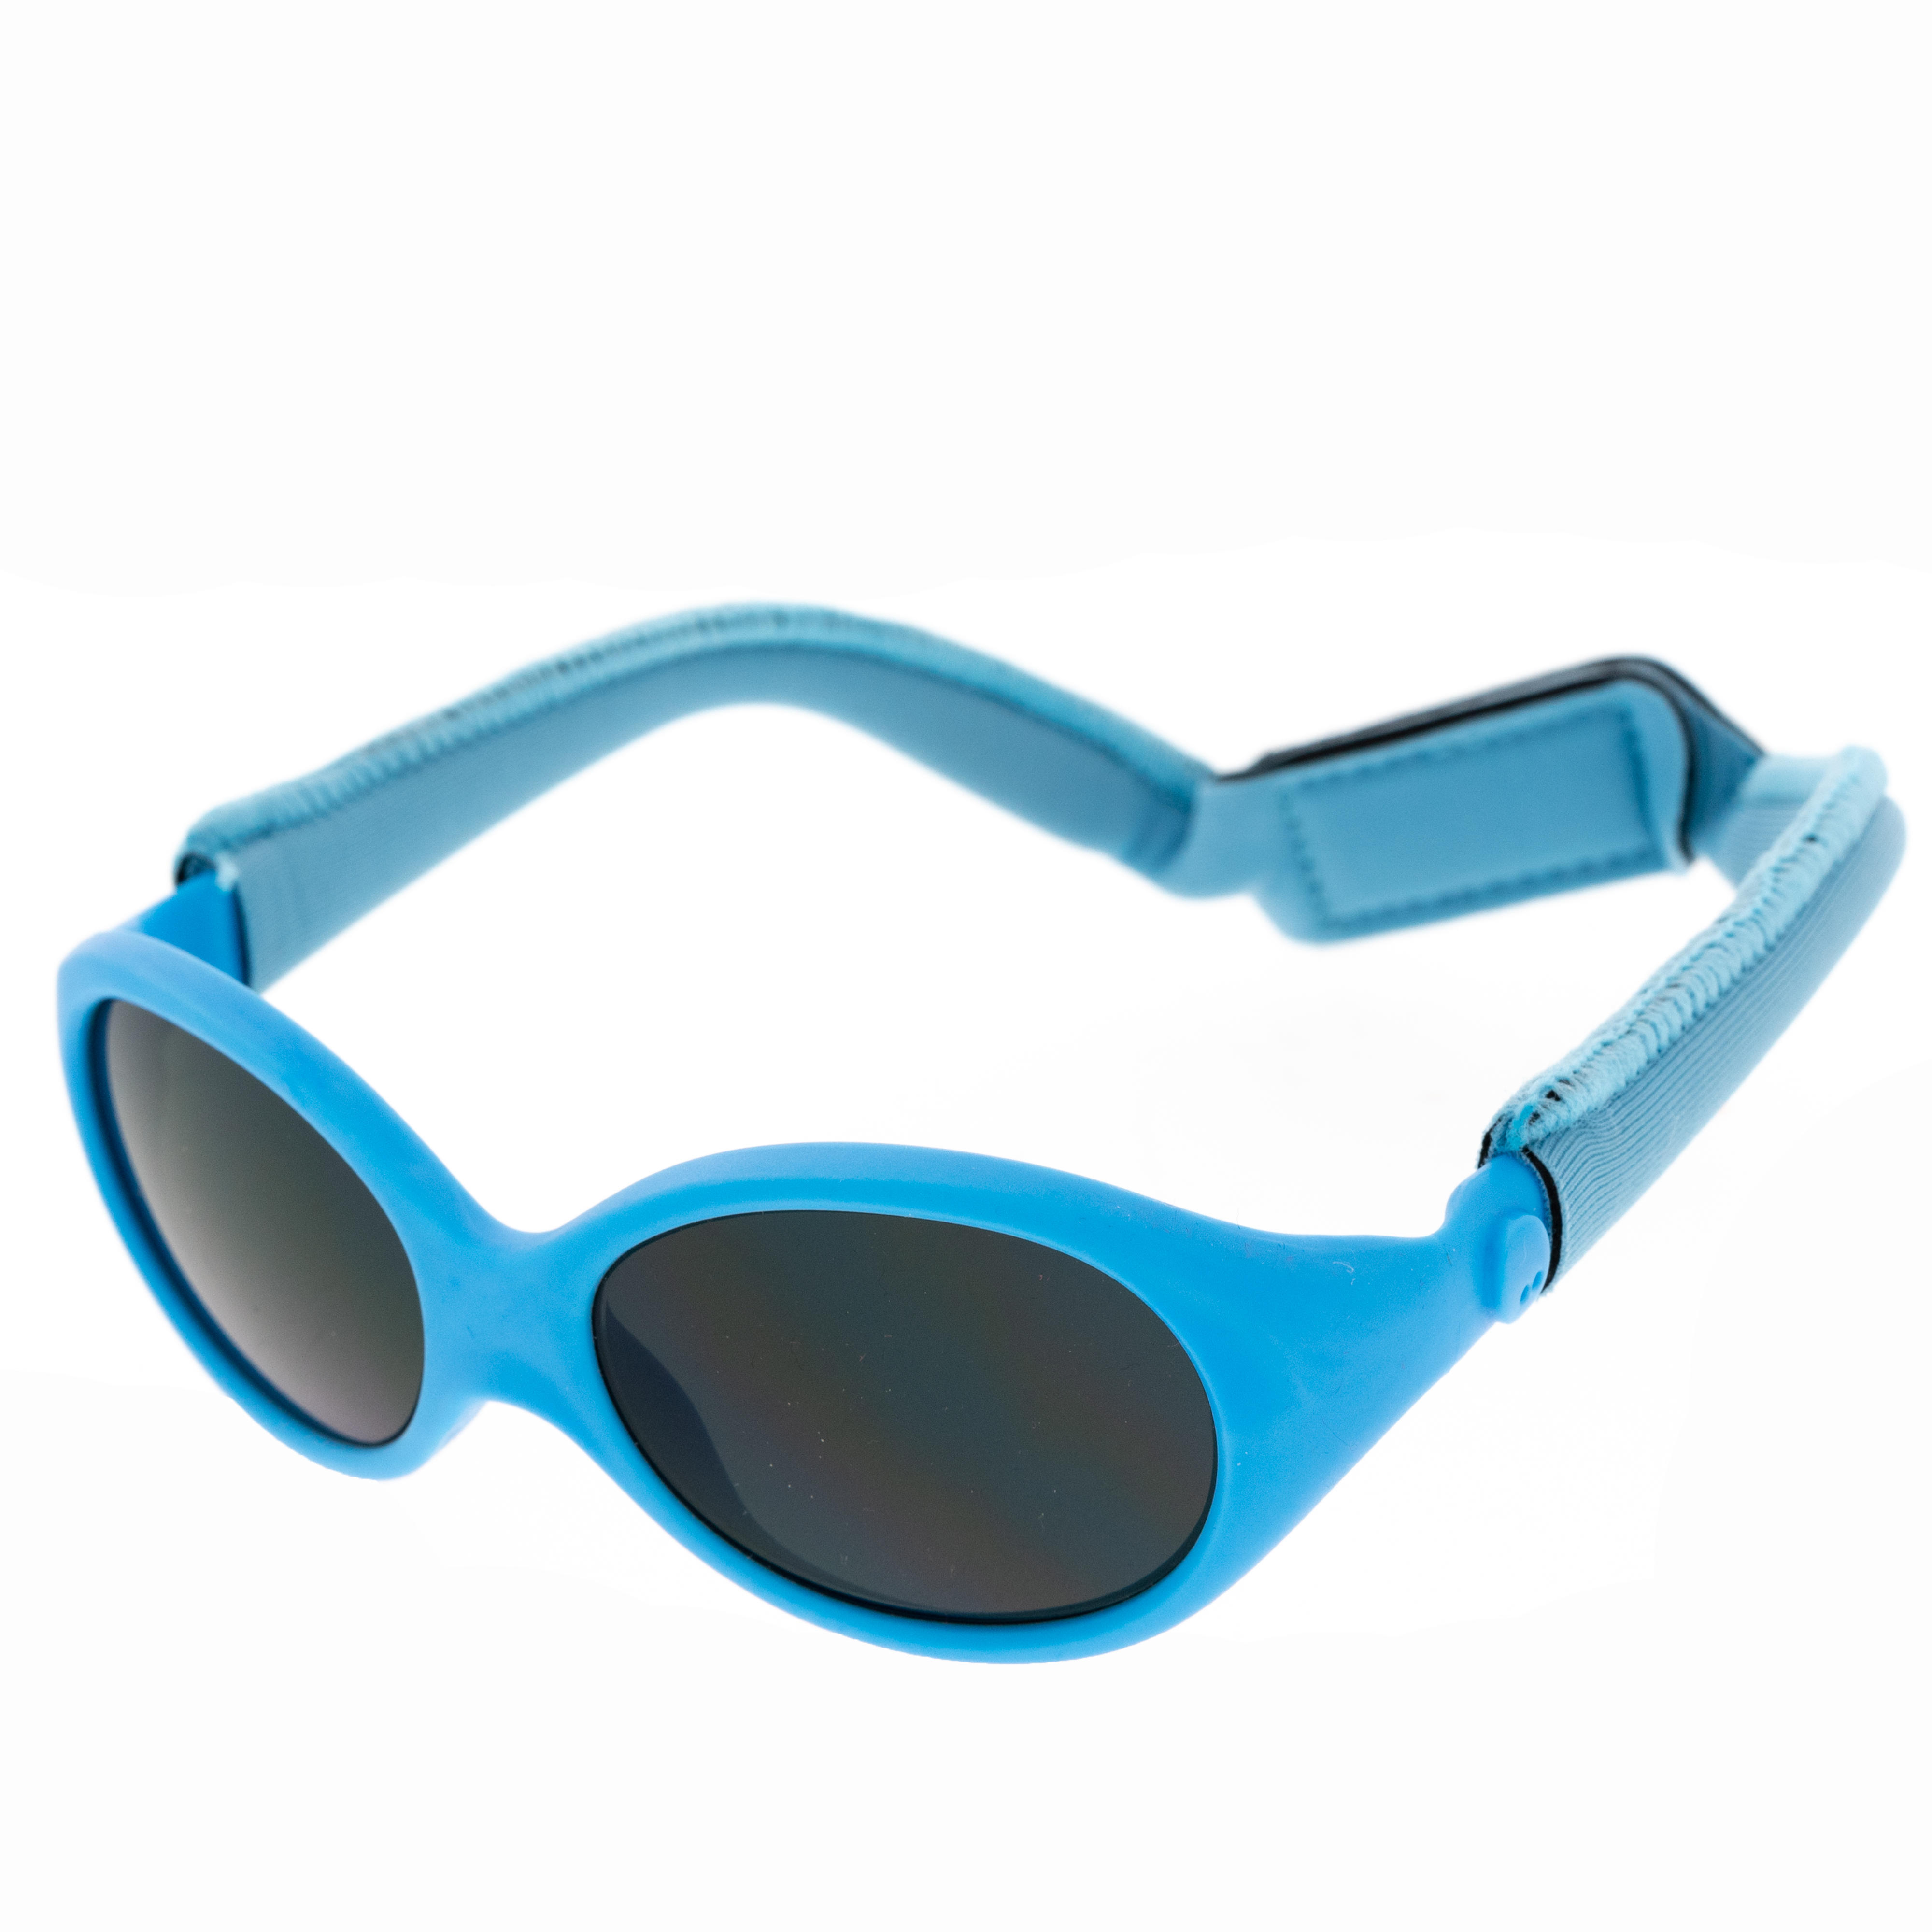 Baby Hiking Sunglasses (6-24 Months) MH B100 Category 4 - Blue